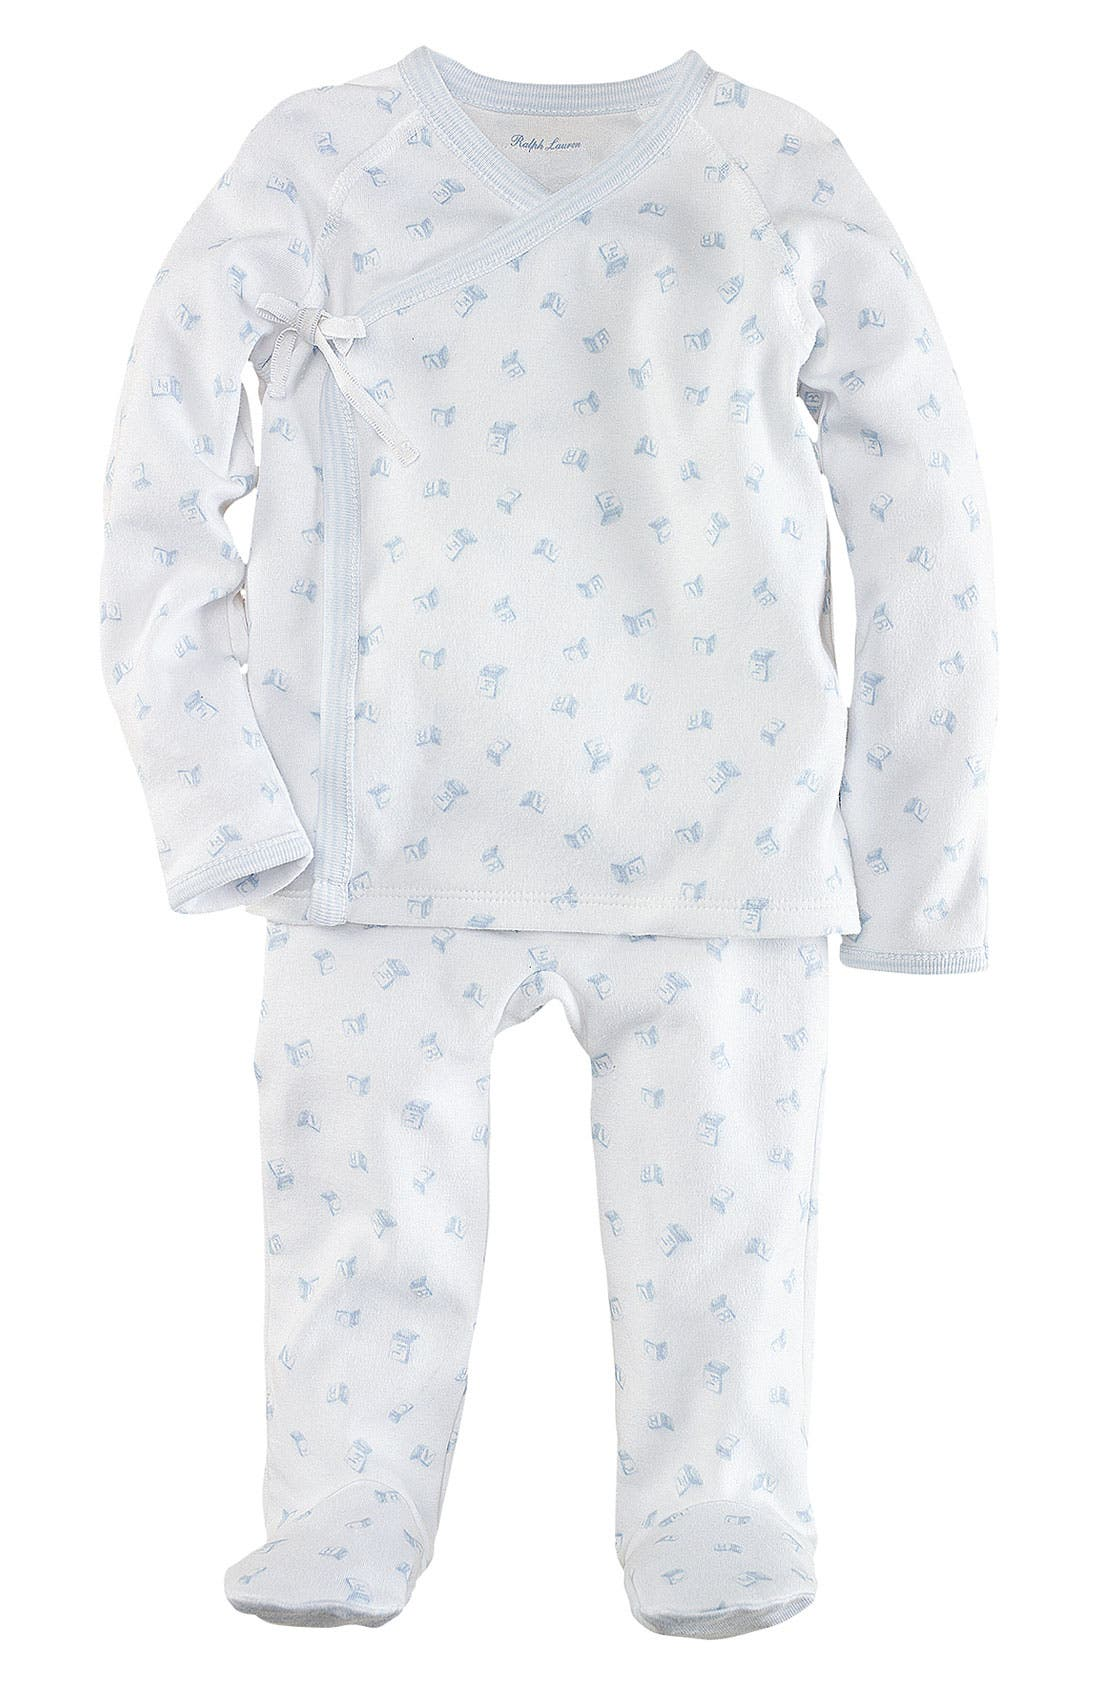 Alternate Image 1 Selected - Ralph Lauren Top & Footed Leggings (Infant)